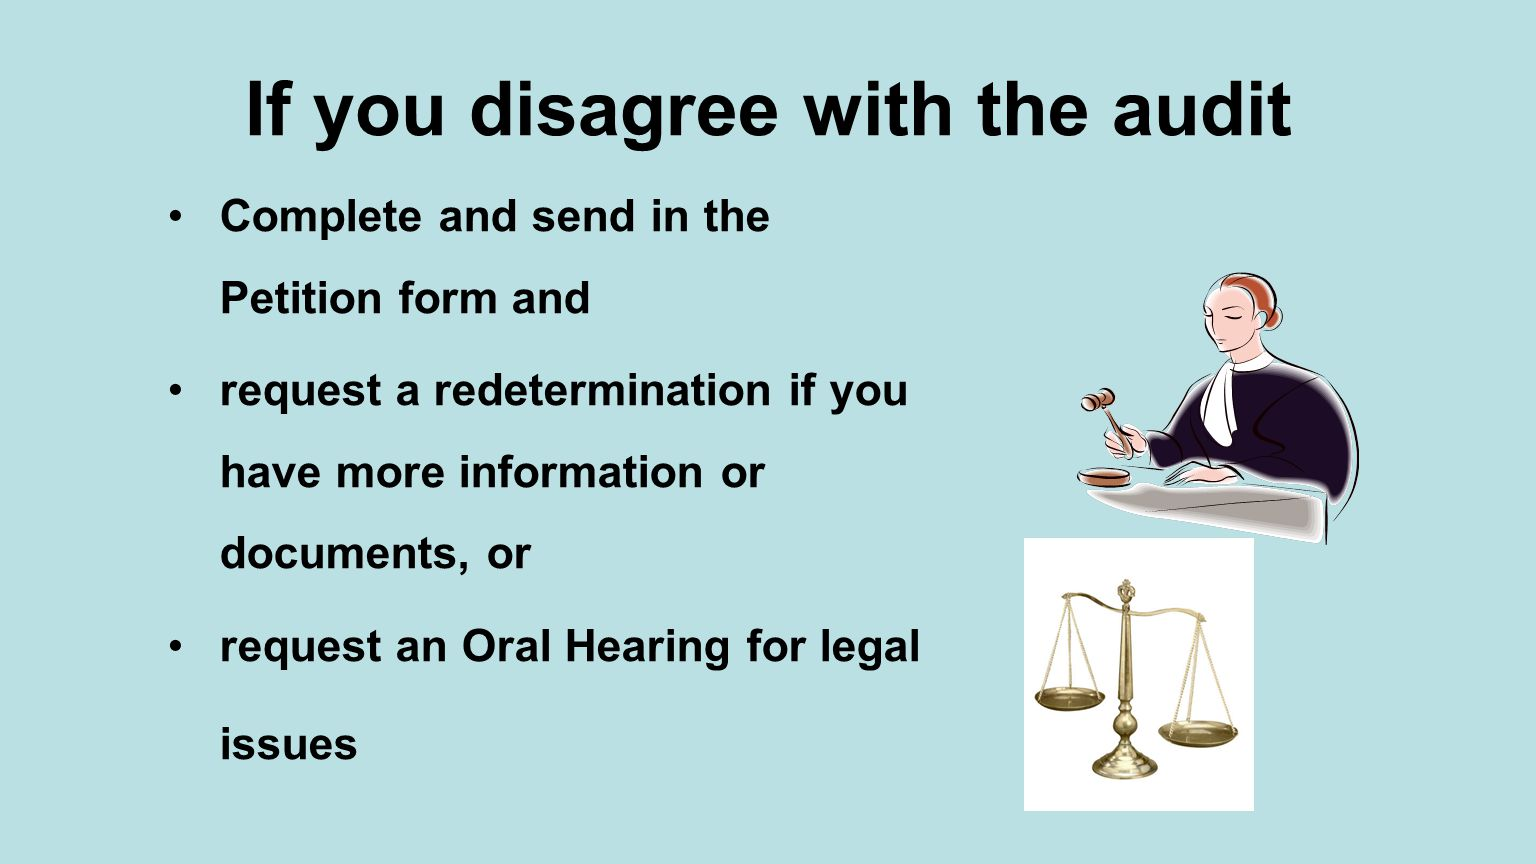 If you disagree with the audit Complete and send in the Petition form and request a redetermination if you have more information or documents, or request an Oral Hearing for legal issues